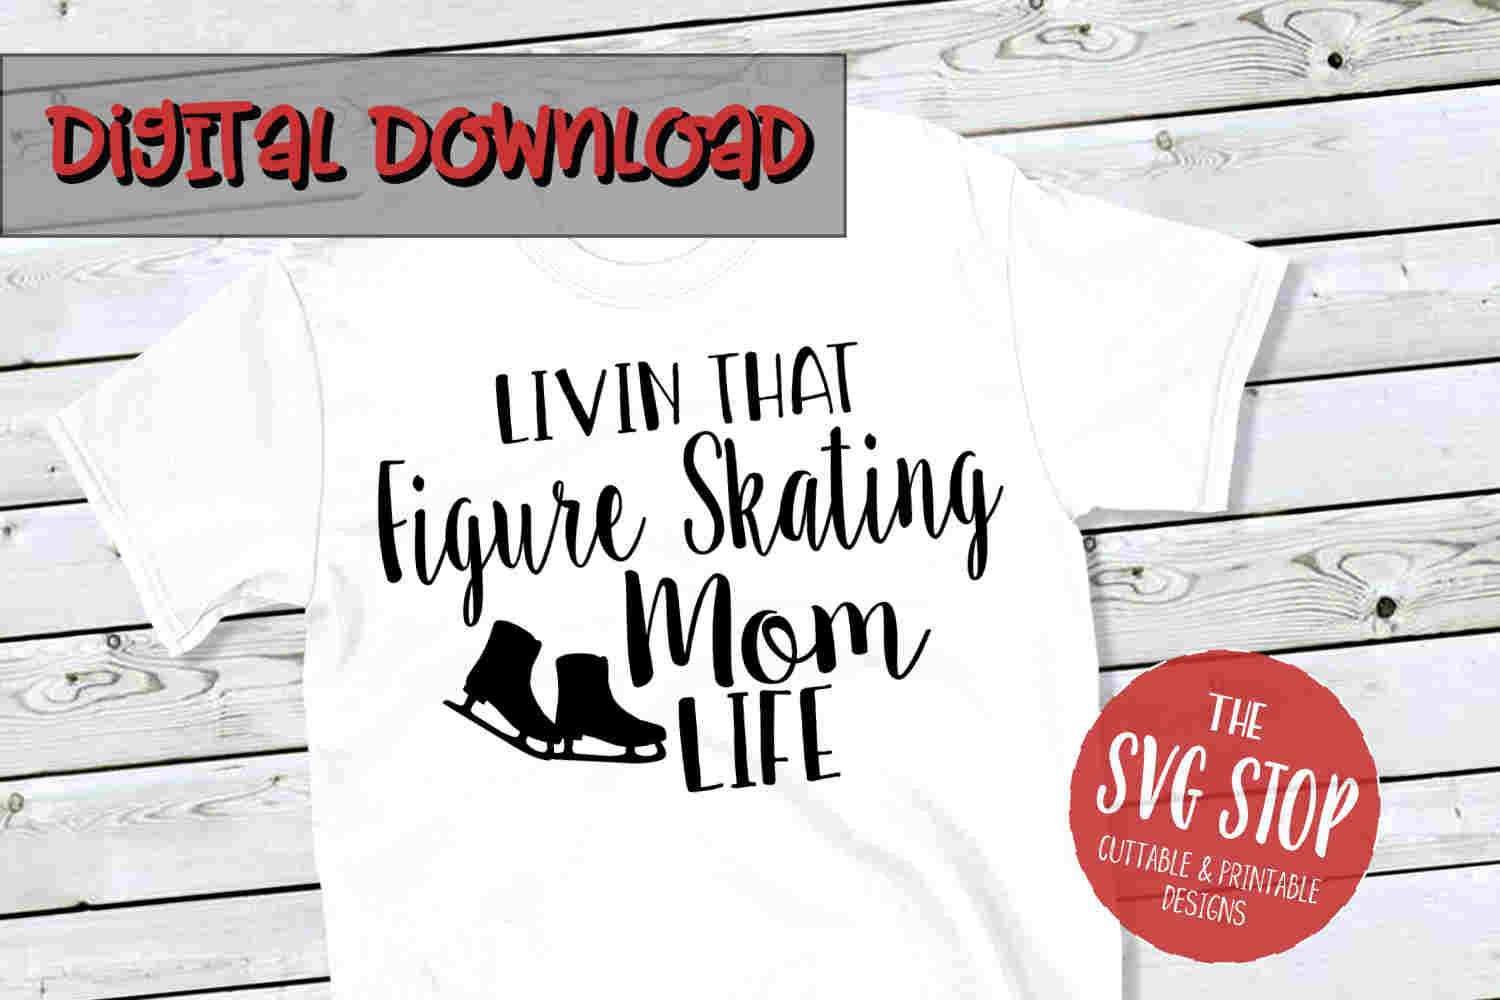 Figure Skating Mom Life -SVG, PNG, DXF example image 1